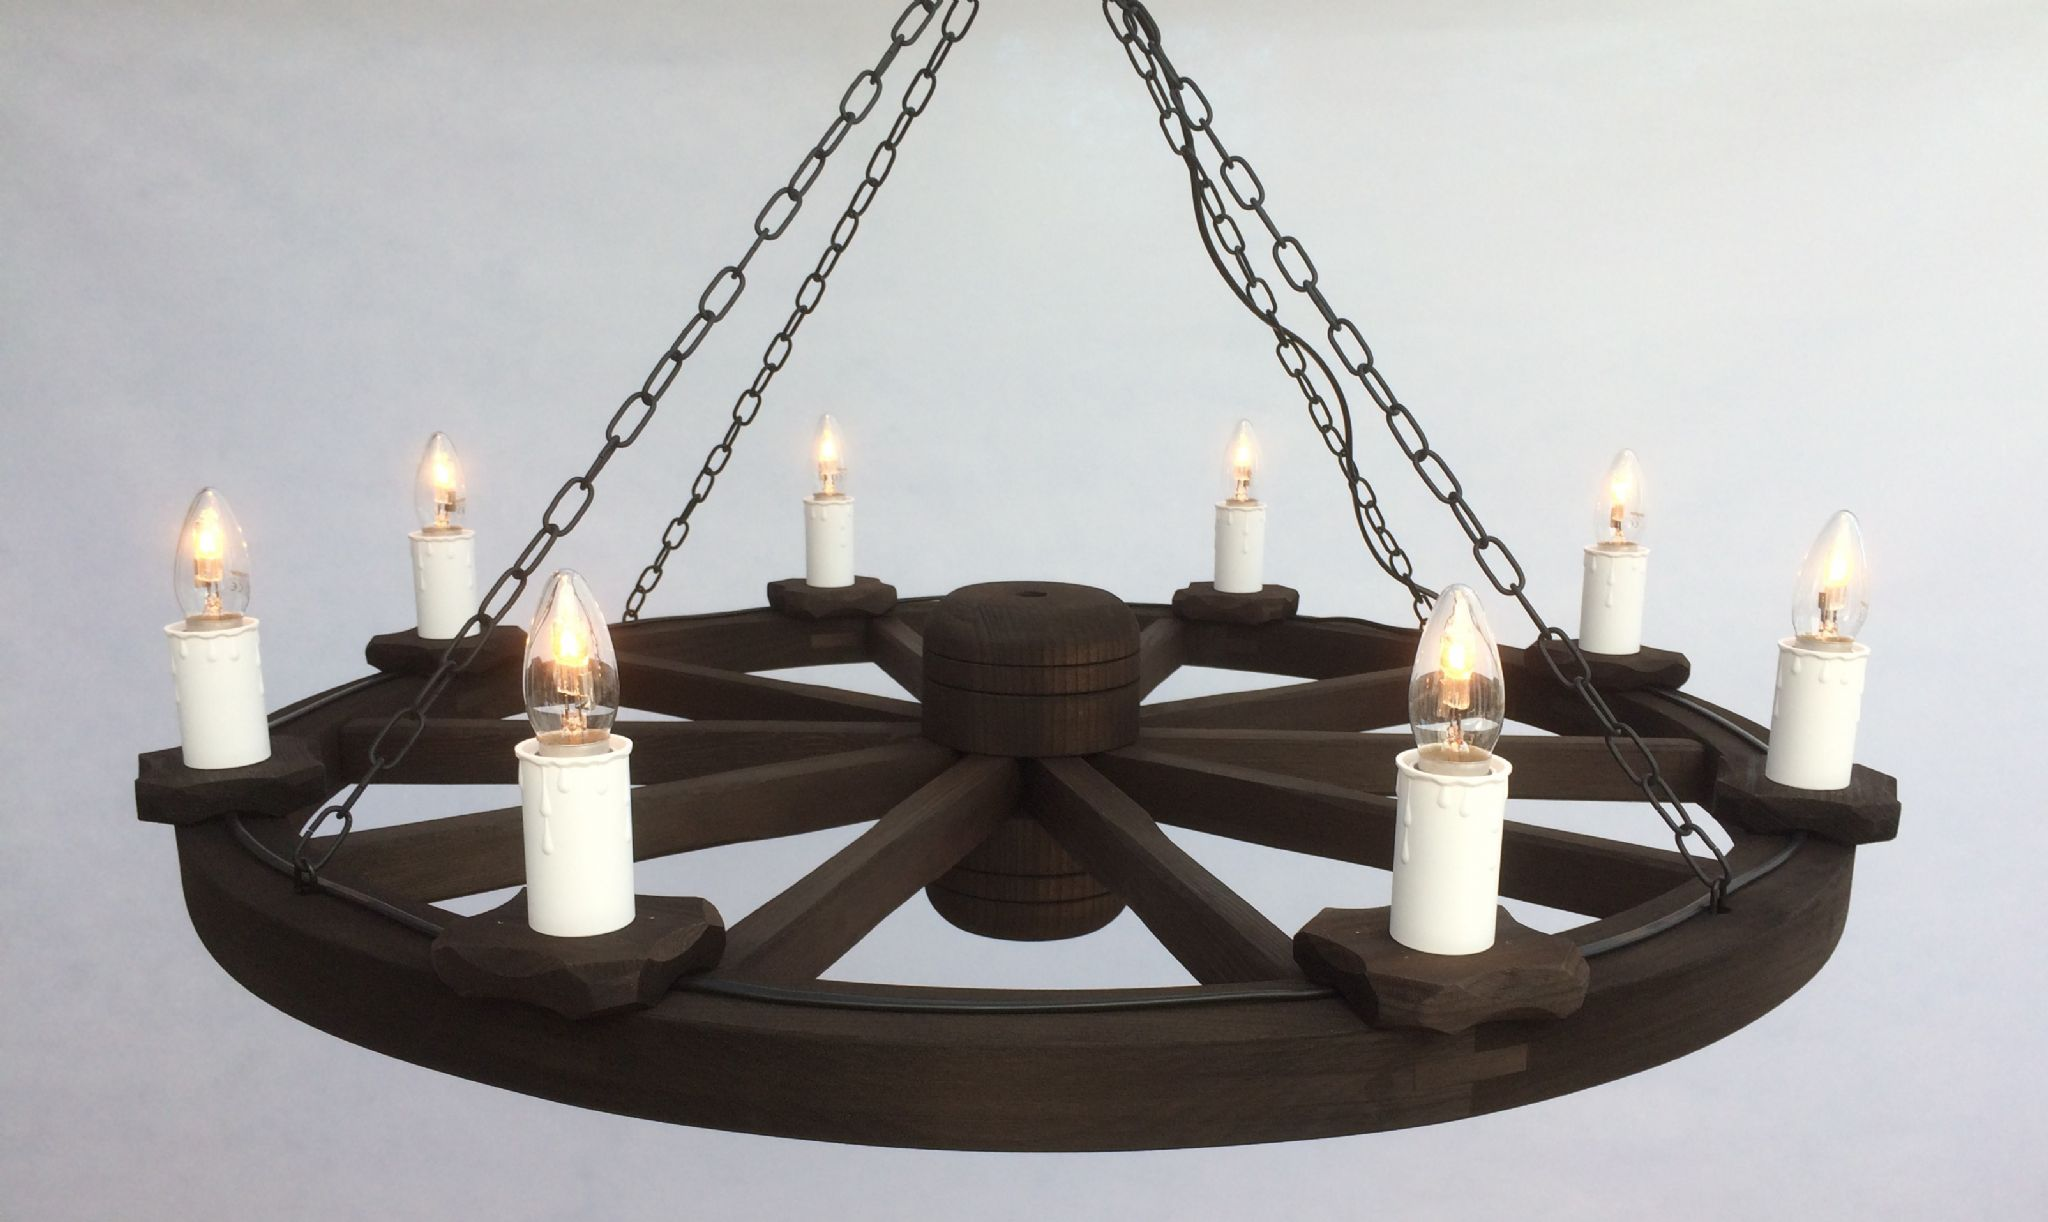 8 Light Rustic Wooden Cartwheel Pendant Ceiling Light